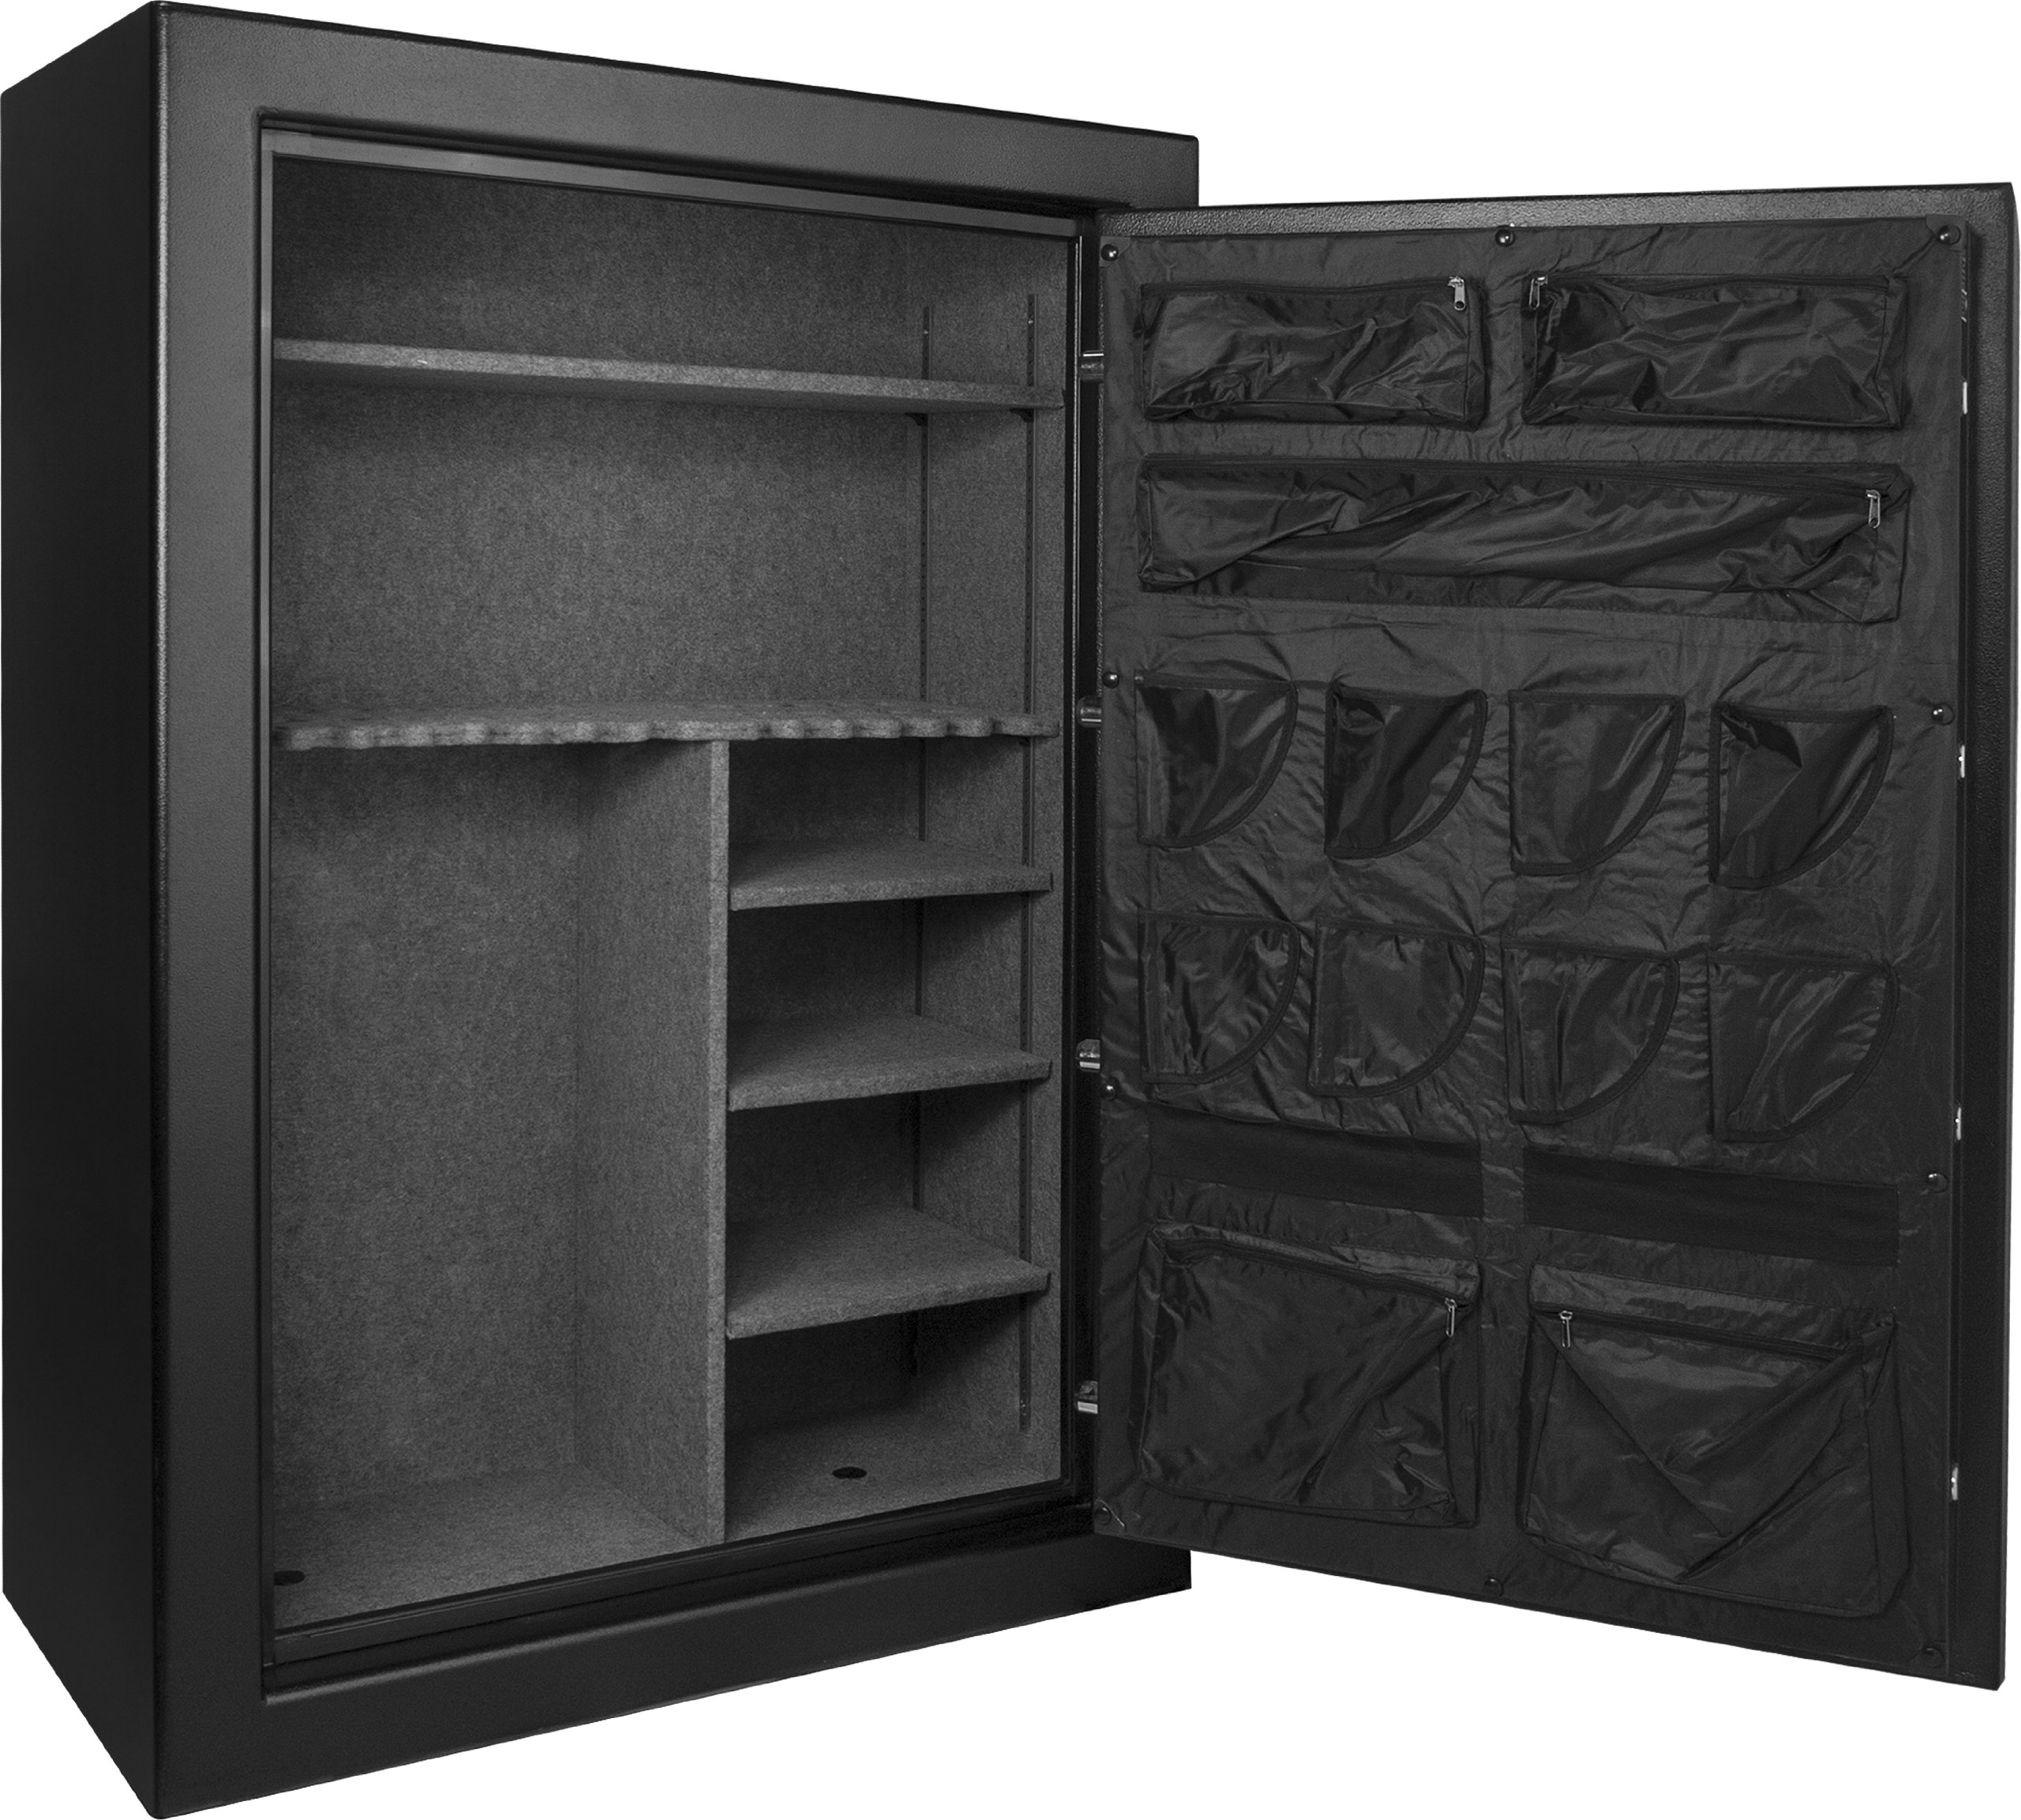 Barska New Fireproof Fire Vault Rifle Gun Keypad Lock Safe Cabinet (19.9 Cubic feet) by BARSKA